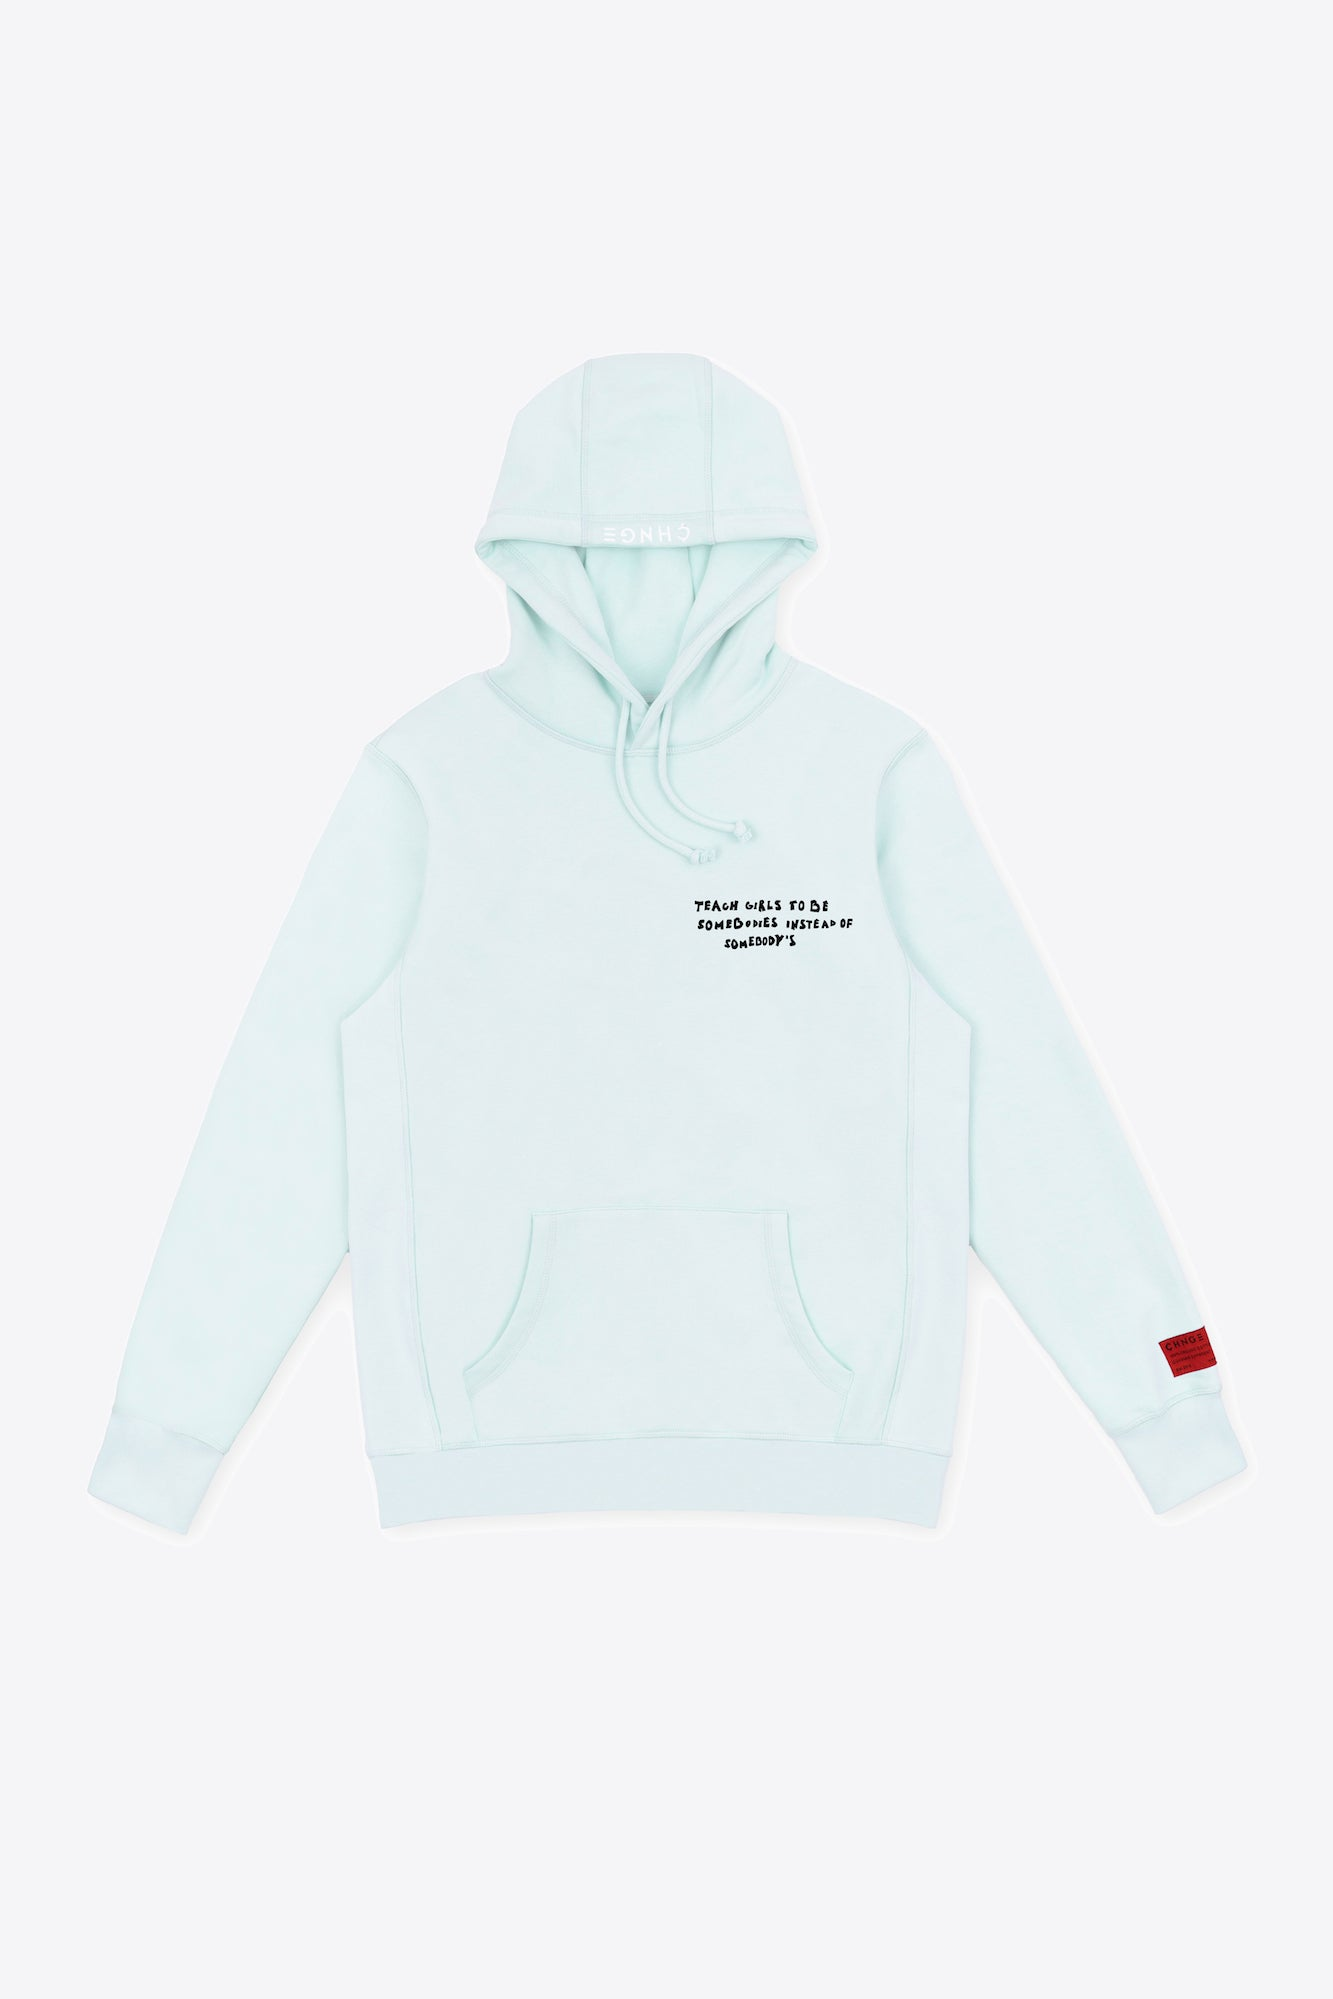 Mint Somebodies Hoodie